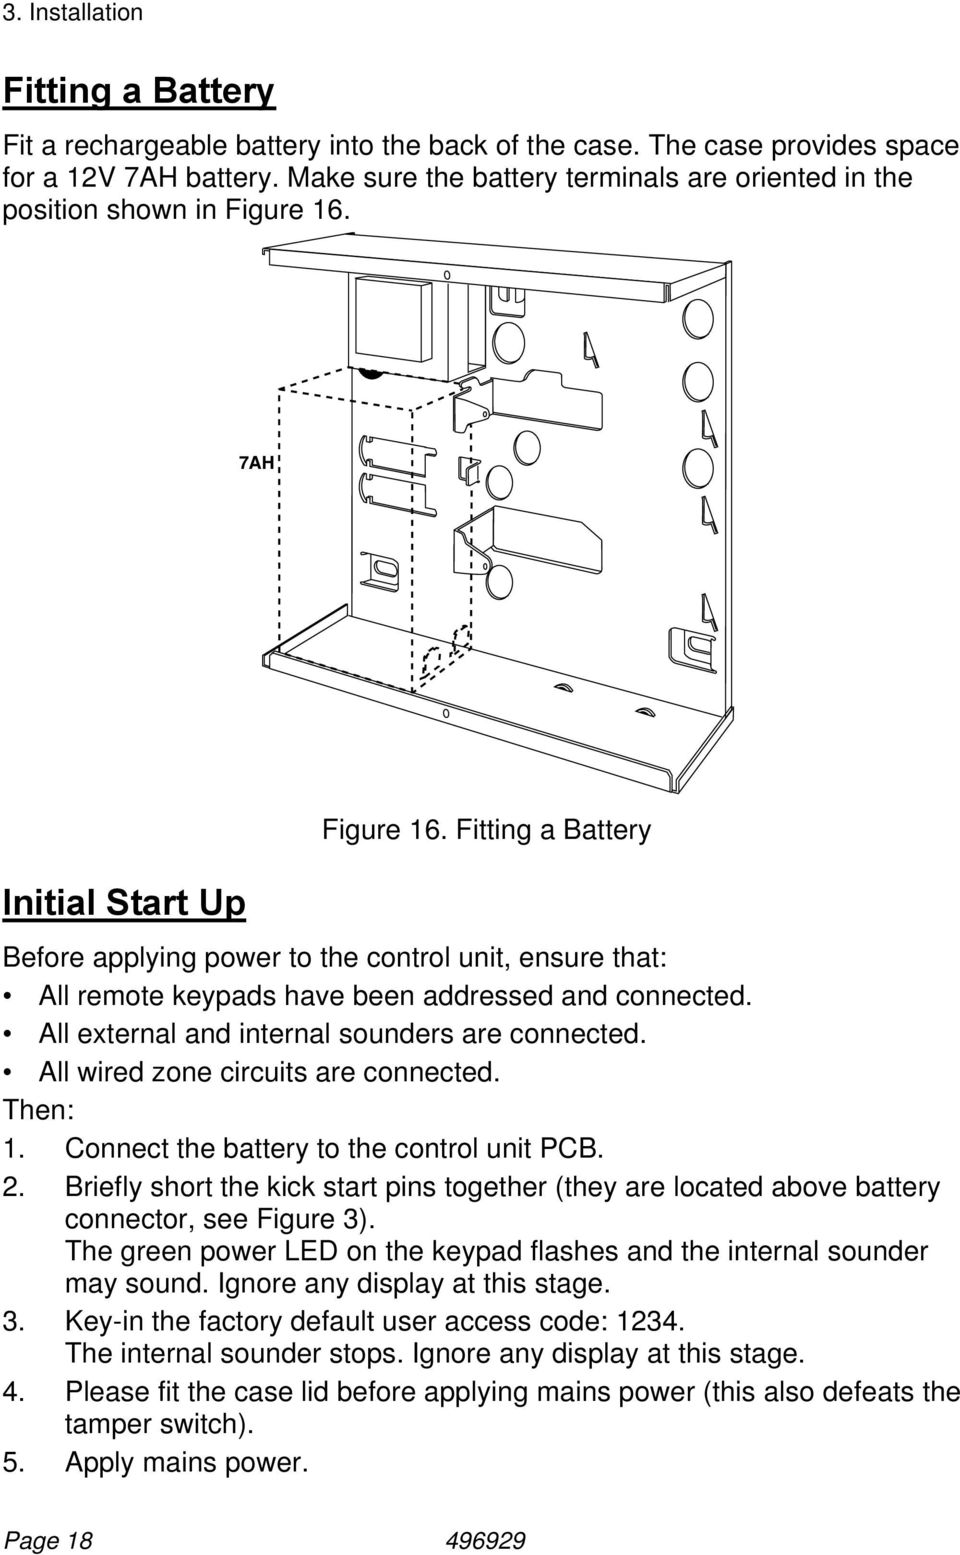 Installation and programming guide hardwired control panel pdf fitting a battery before applying power to the control unit ensure that all remote asfbconference2016 Image collections